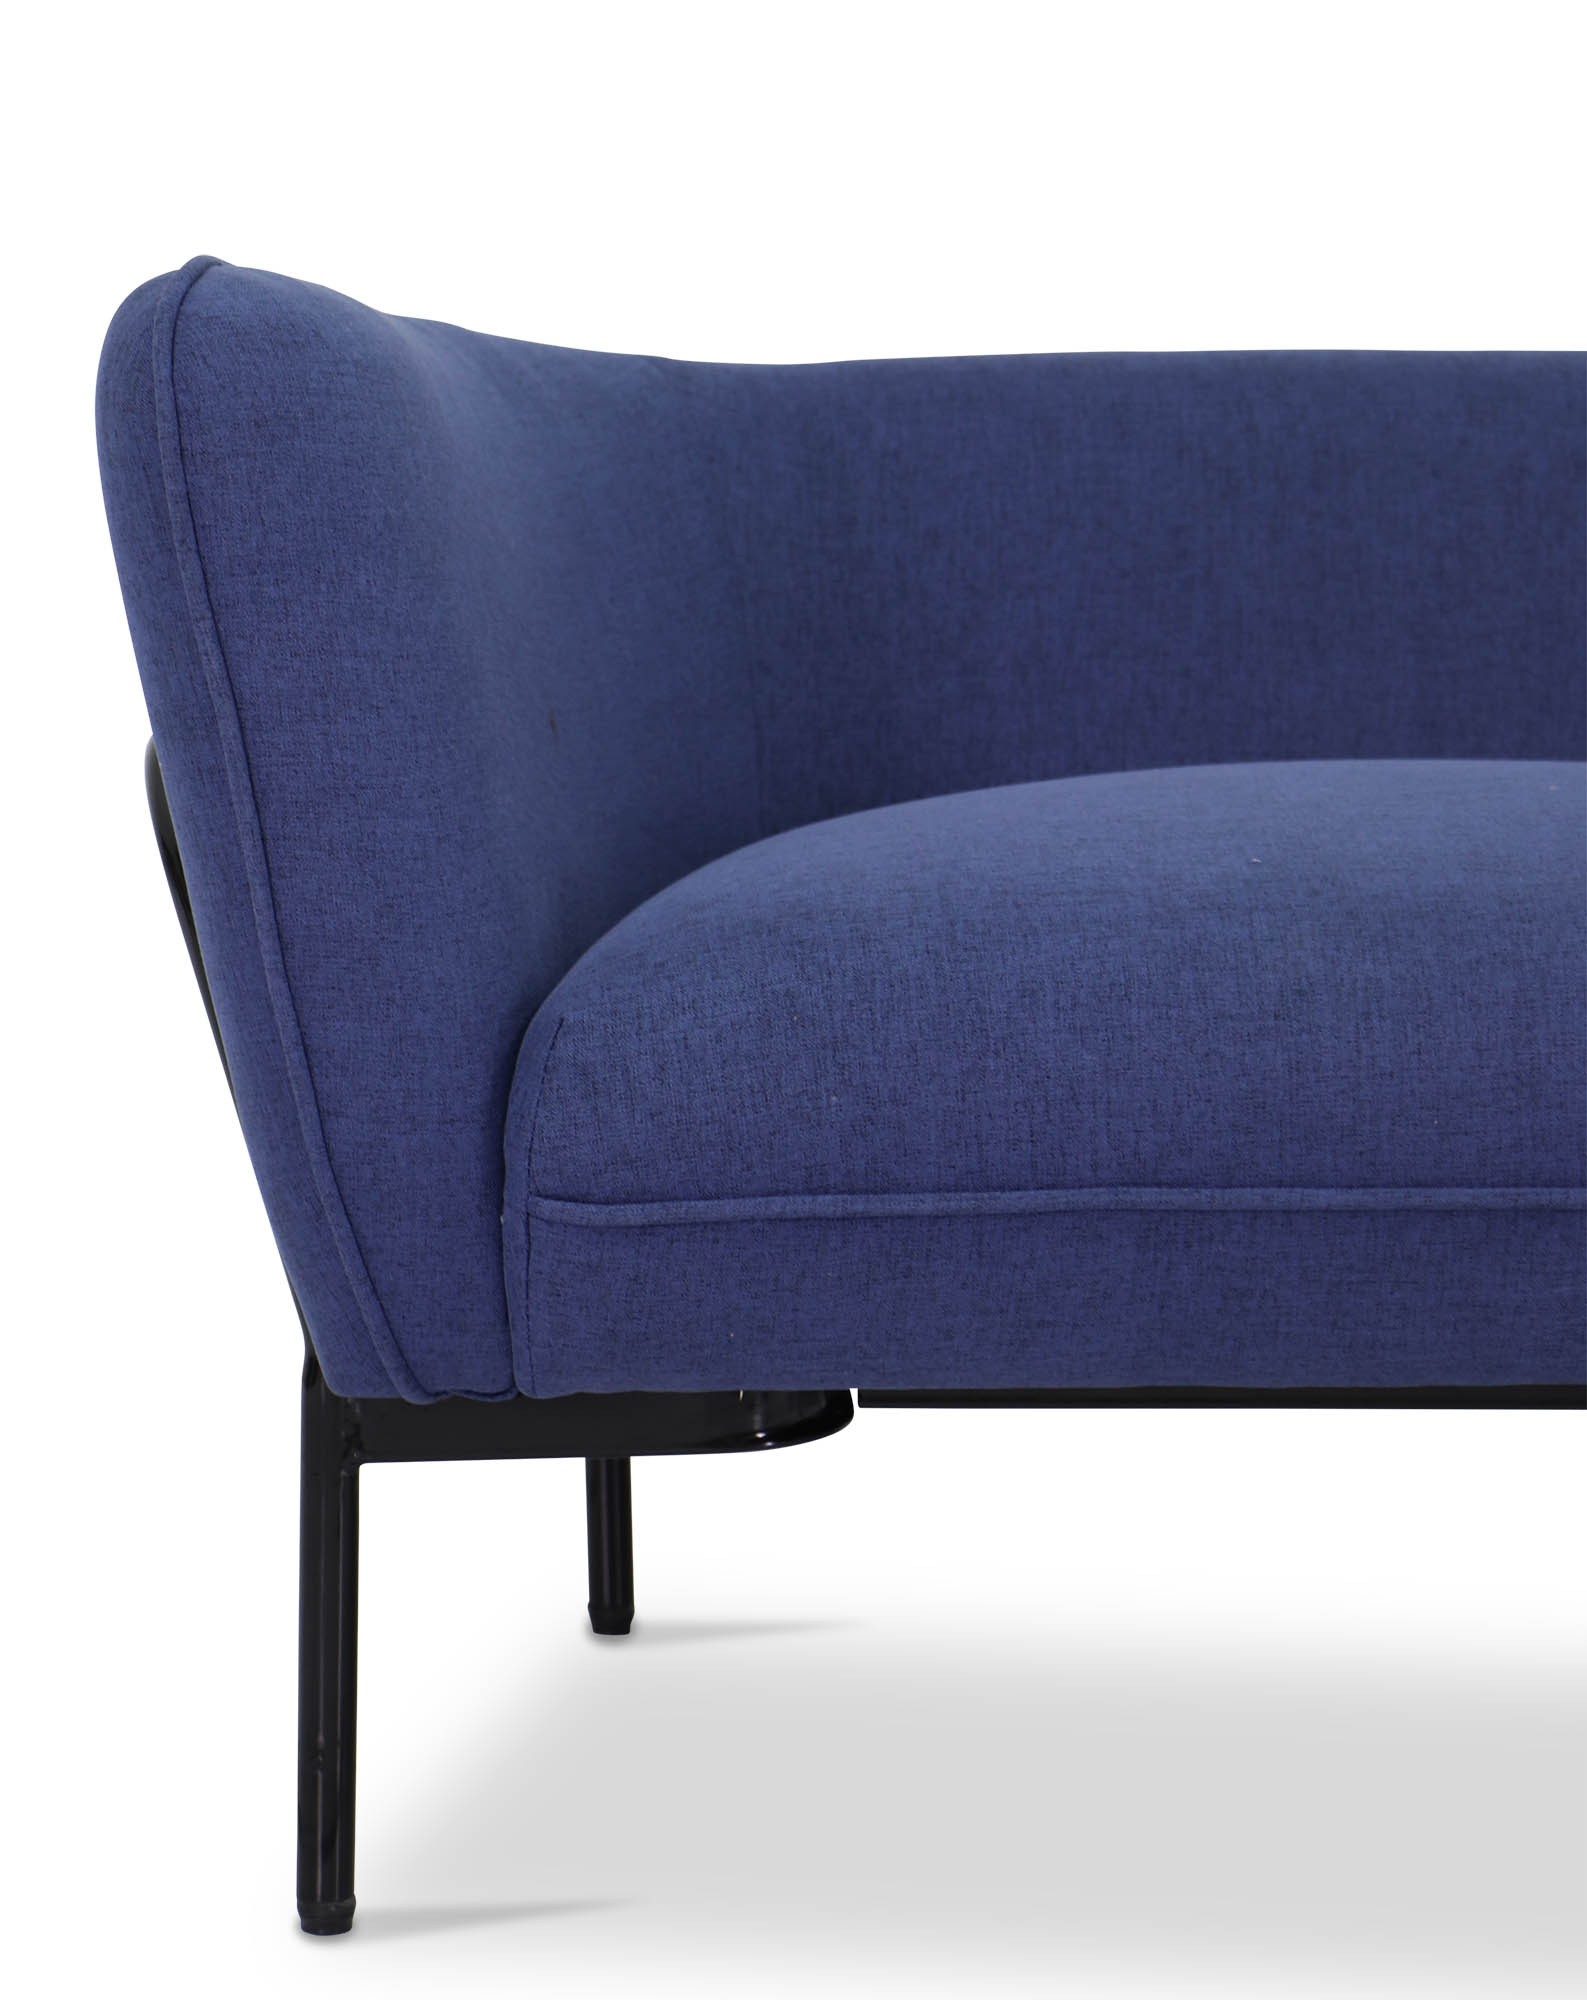 Karen Sofa In Ink Blue With Black Iron Stand | Furniture & Home In Karen Sofa Chairs (Image 14 of 20)